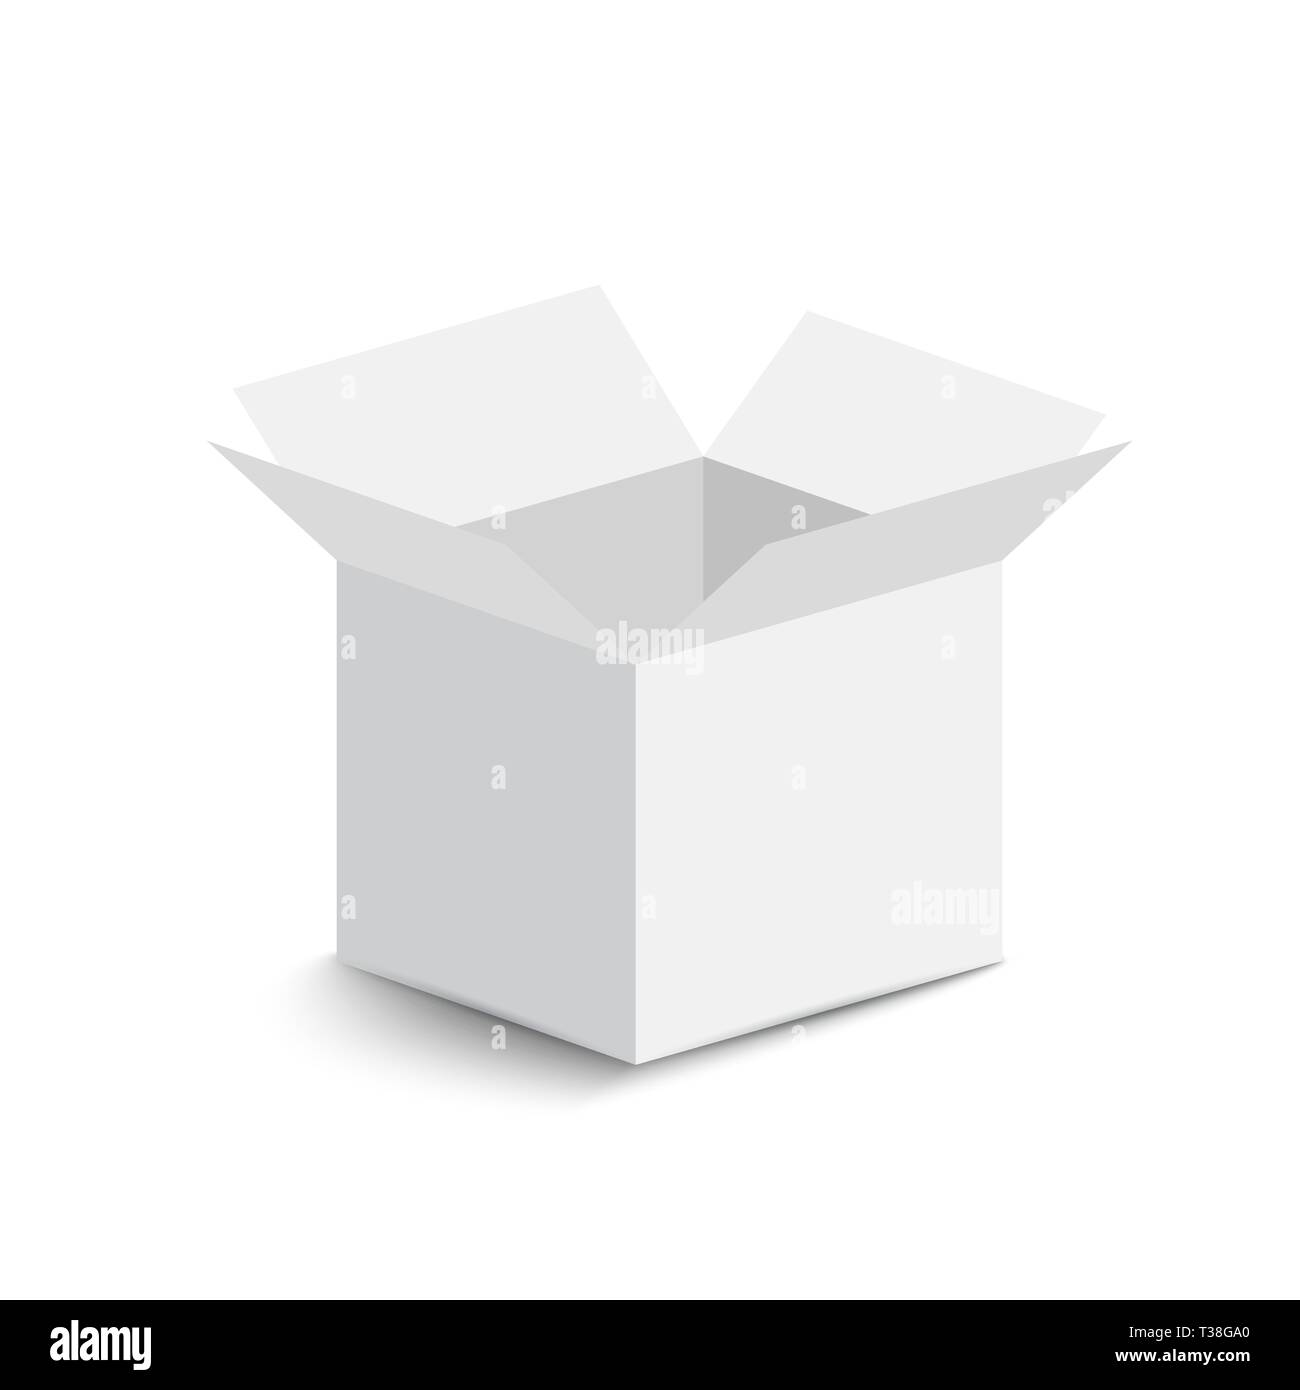 white open box on white background. open box with shadow. vector illustration - Stock Image